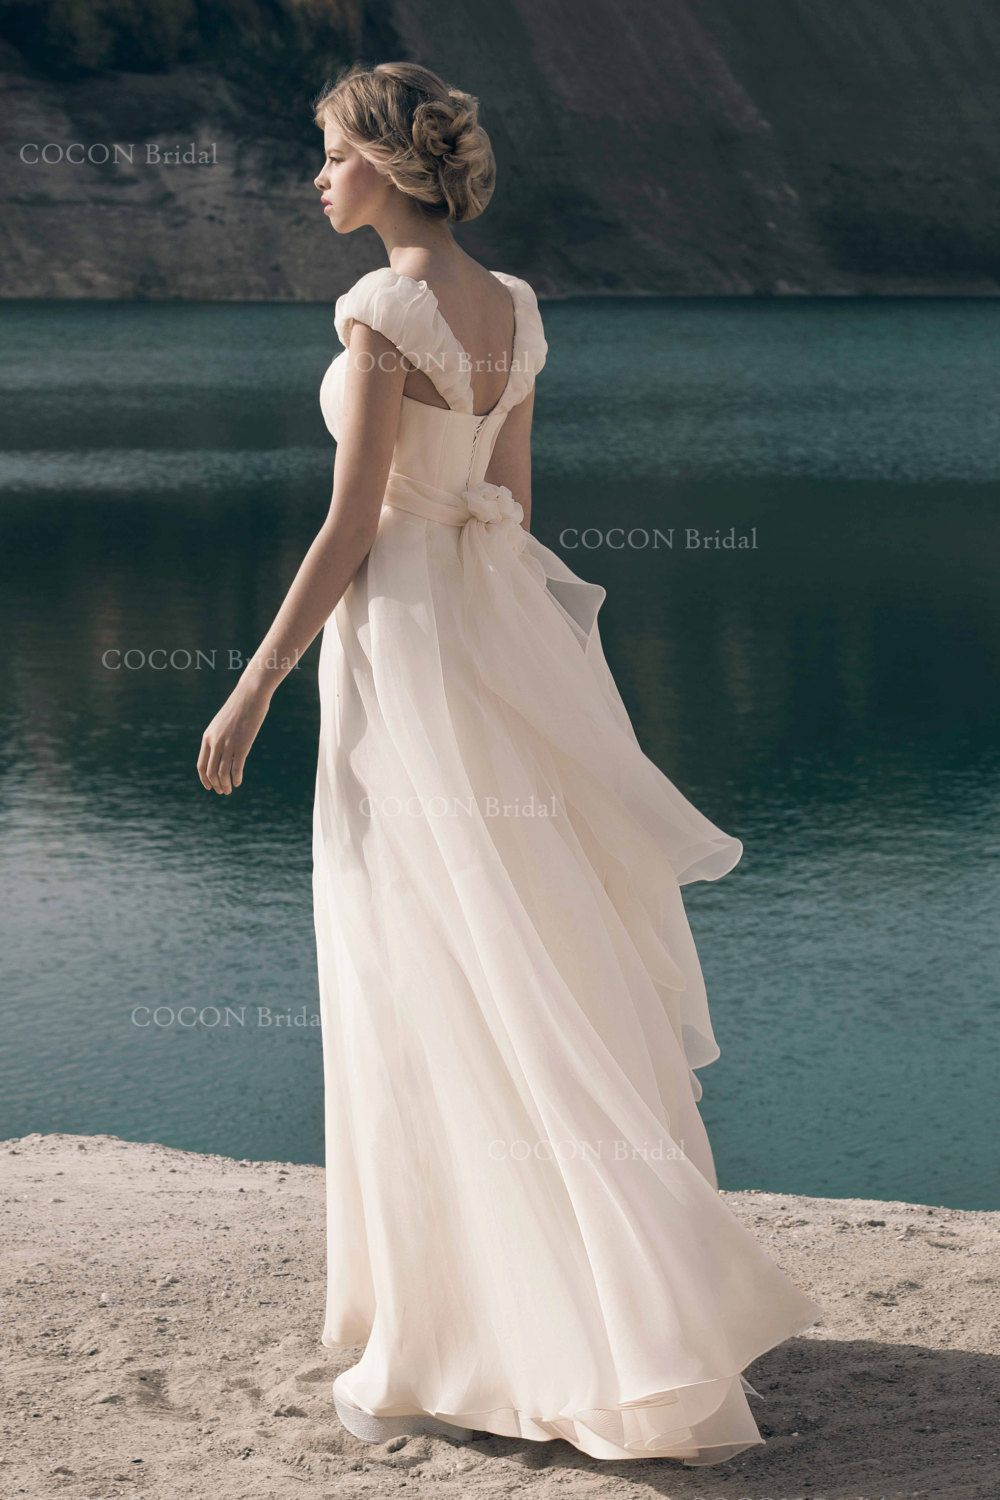 Bohemian wedding dress from highest quality silk organza and